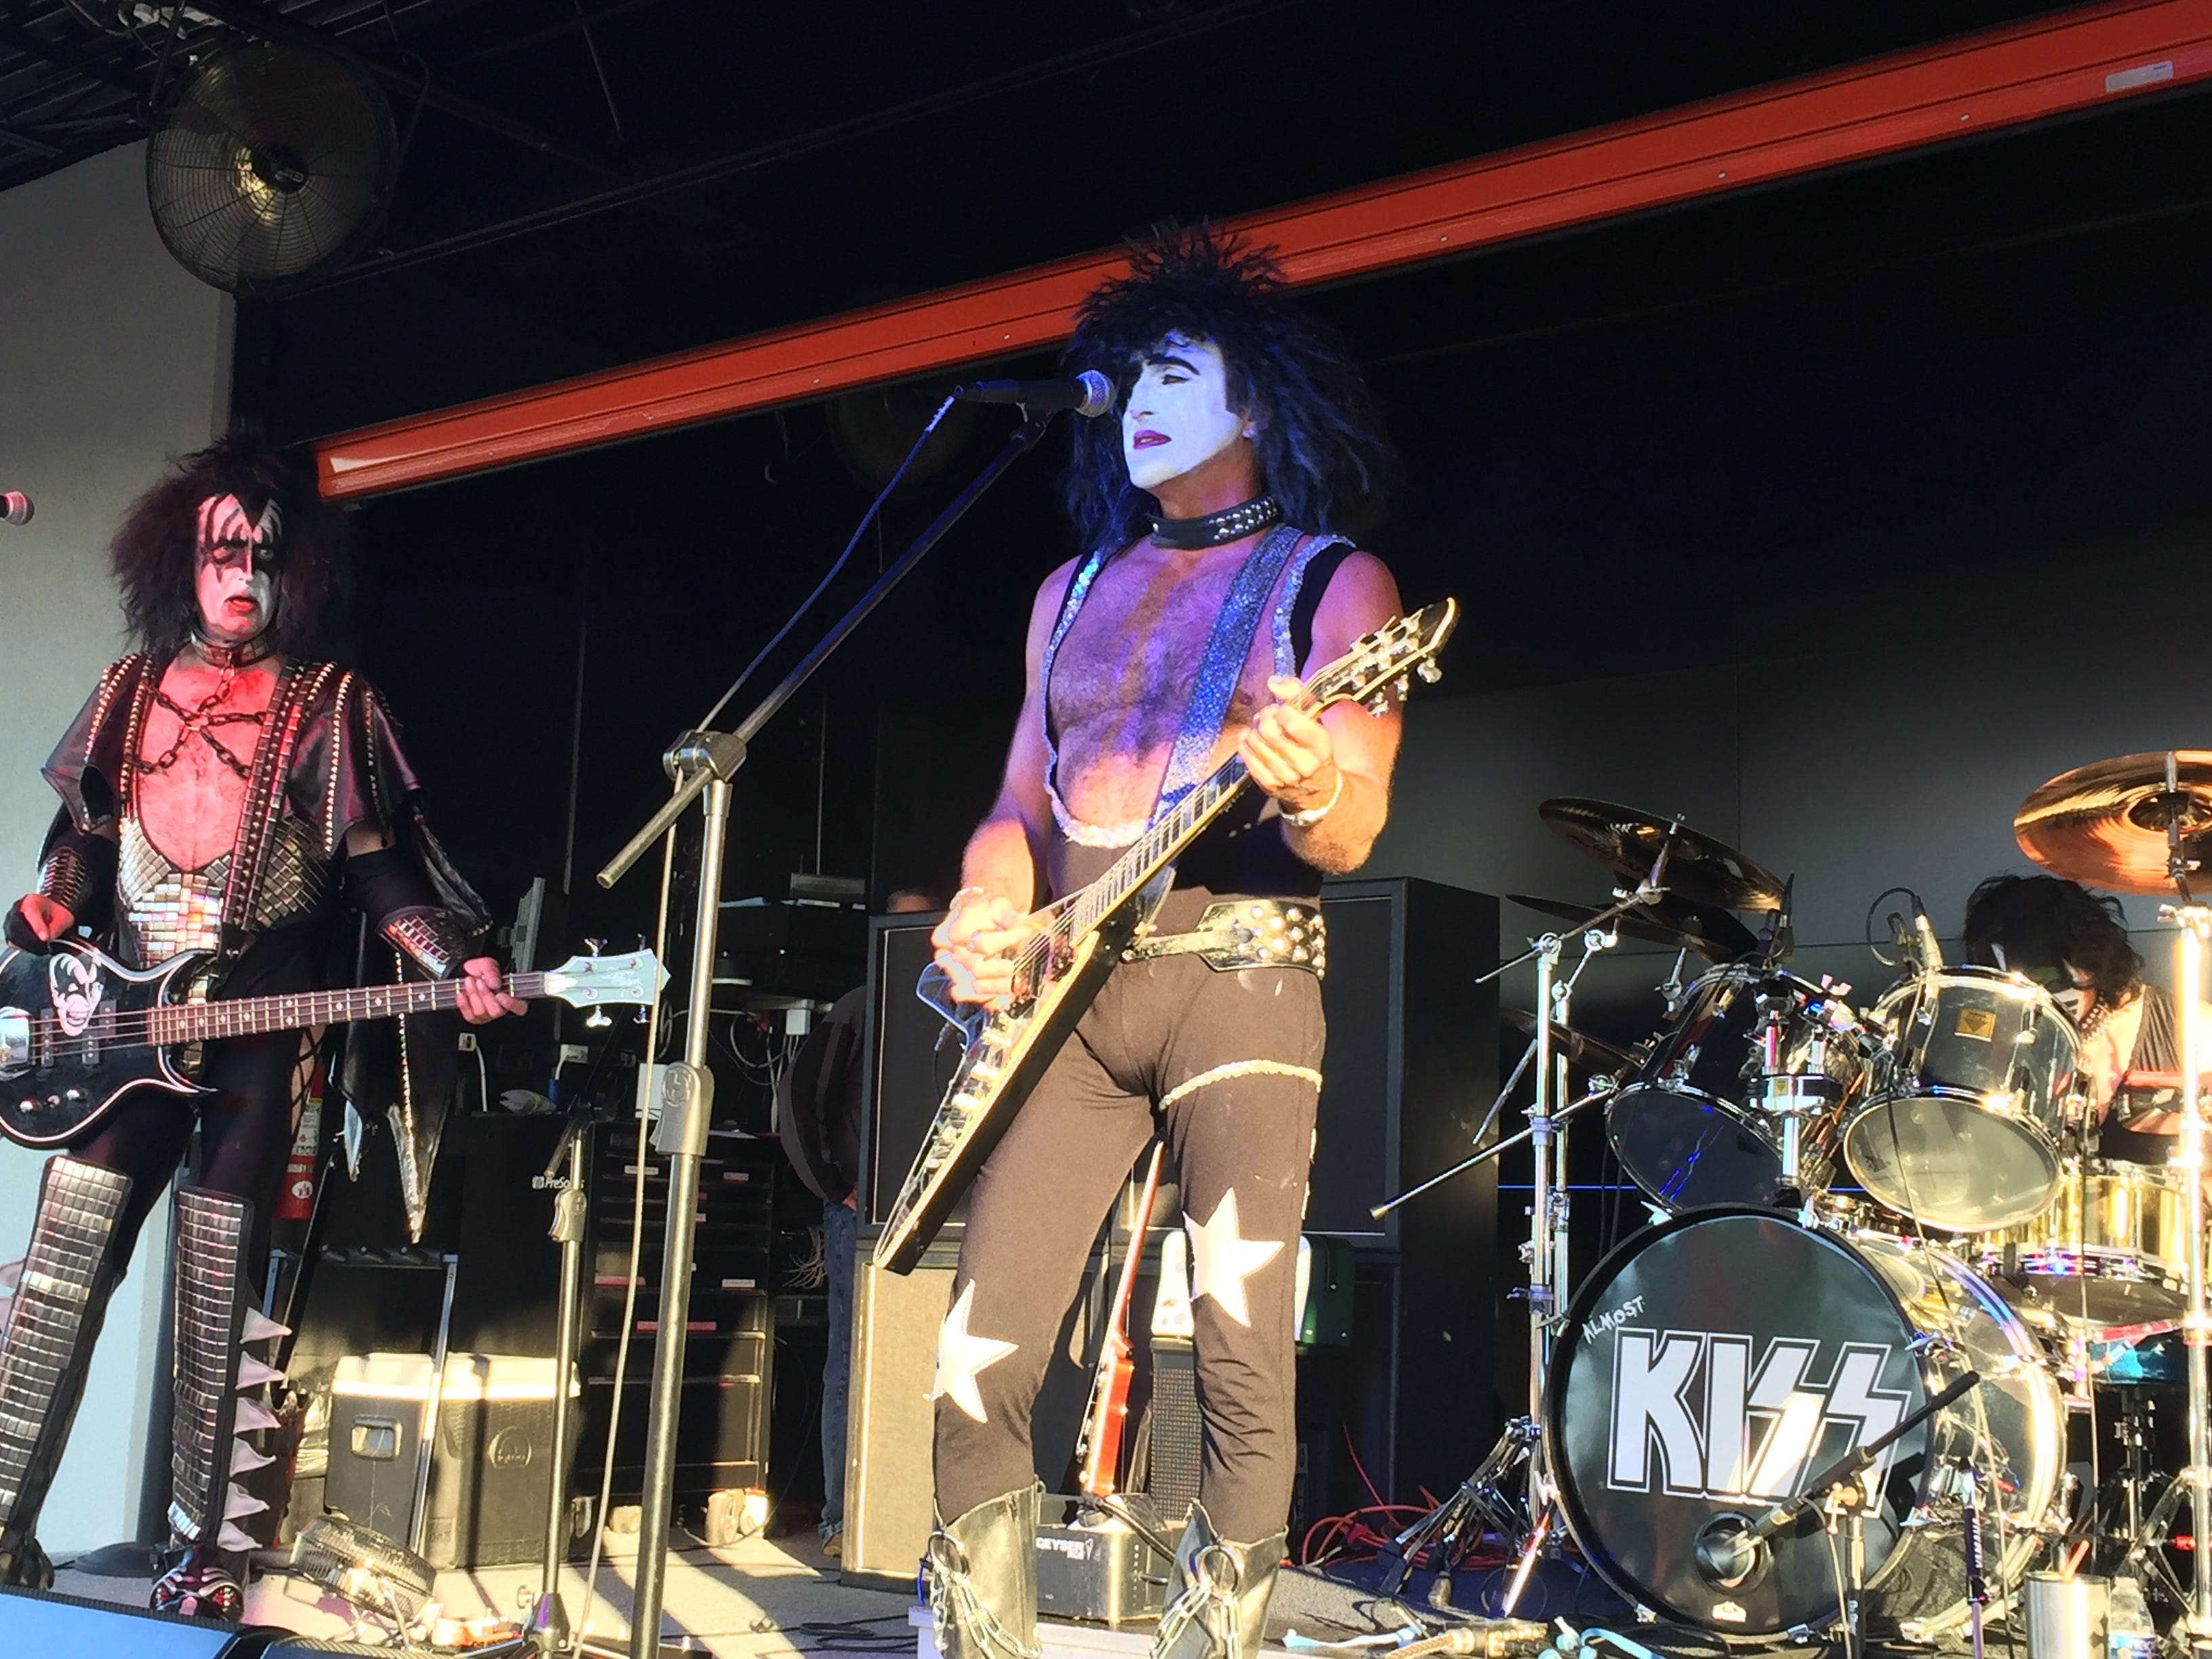 A KISS cover band played to a mostly sit-down crowd at the Worth Harley-Davidson dealership party Aug. 25. About 400 people turned out for live music and beer, to check out new bike models and to meet Harley-Davidson executives such as Karen Davidson and Bill Davidson.